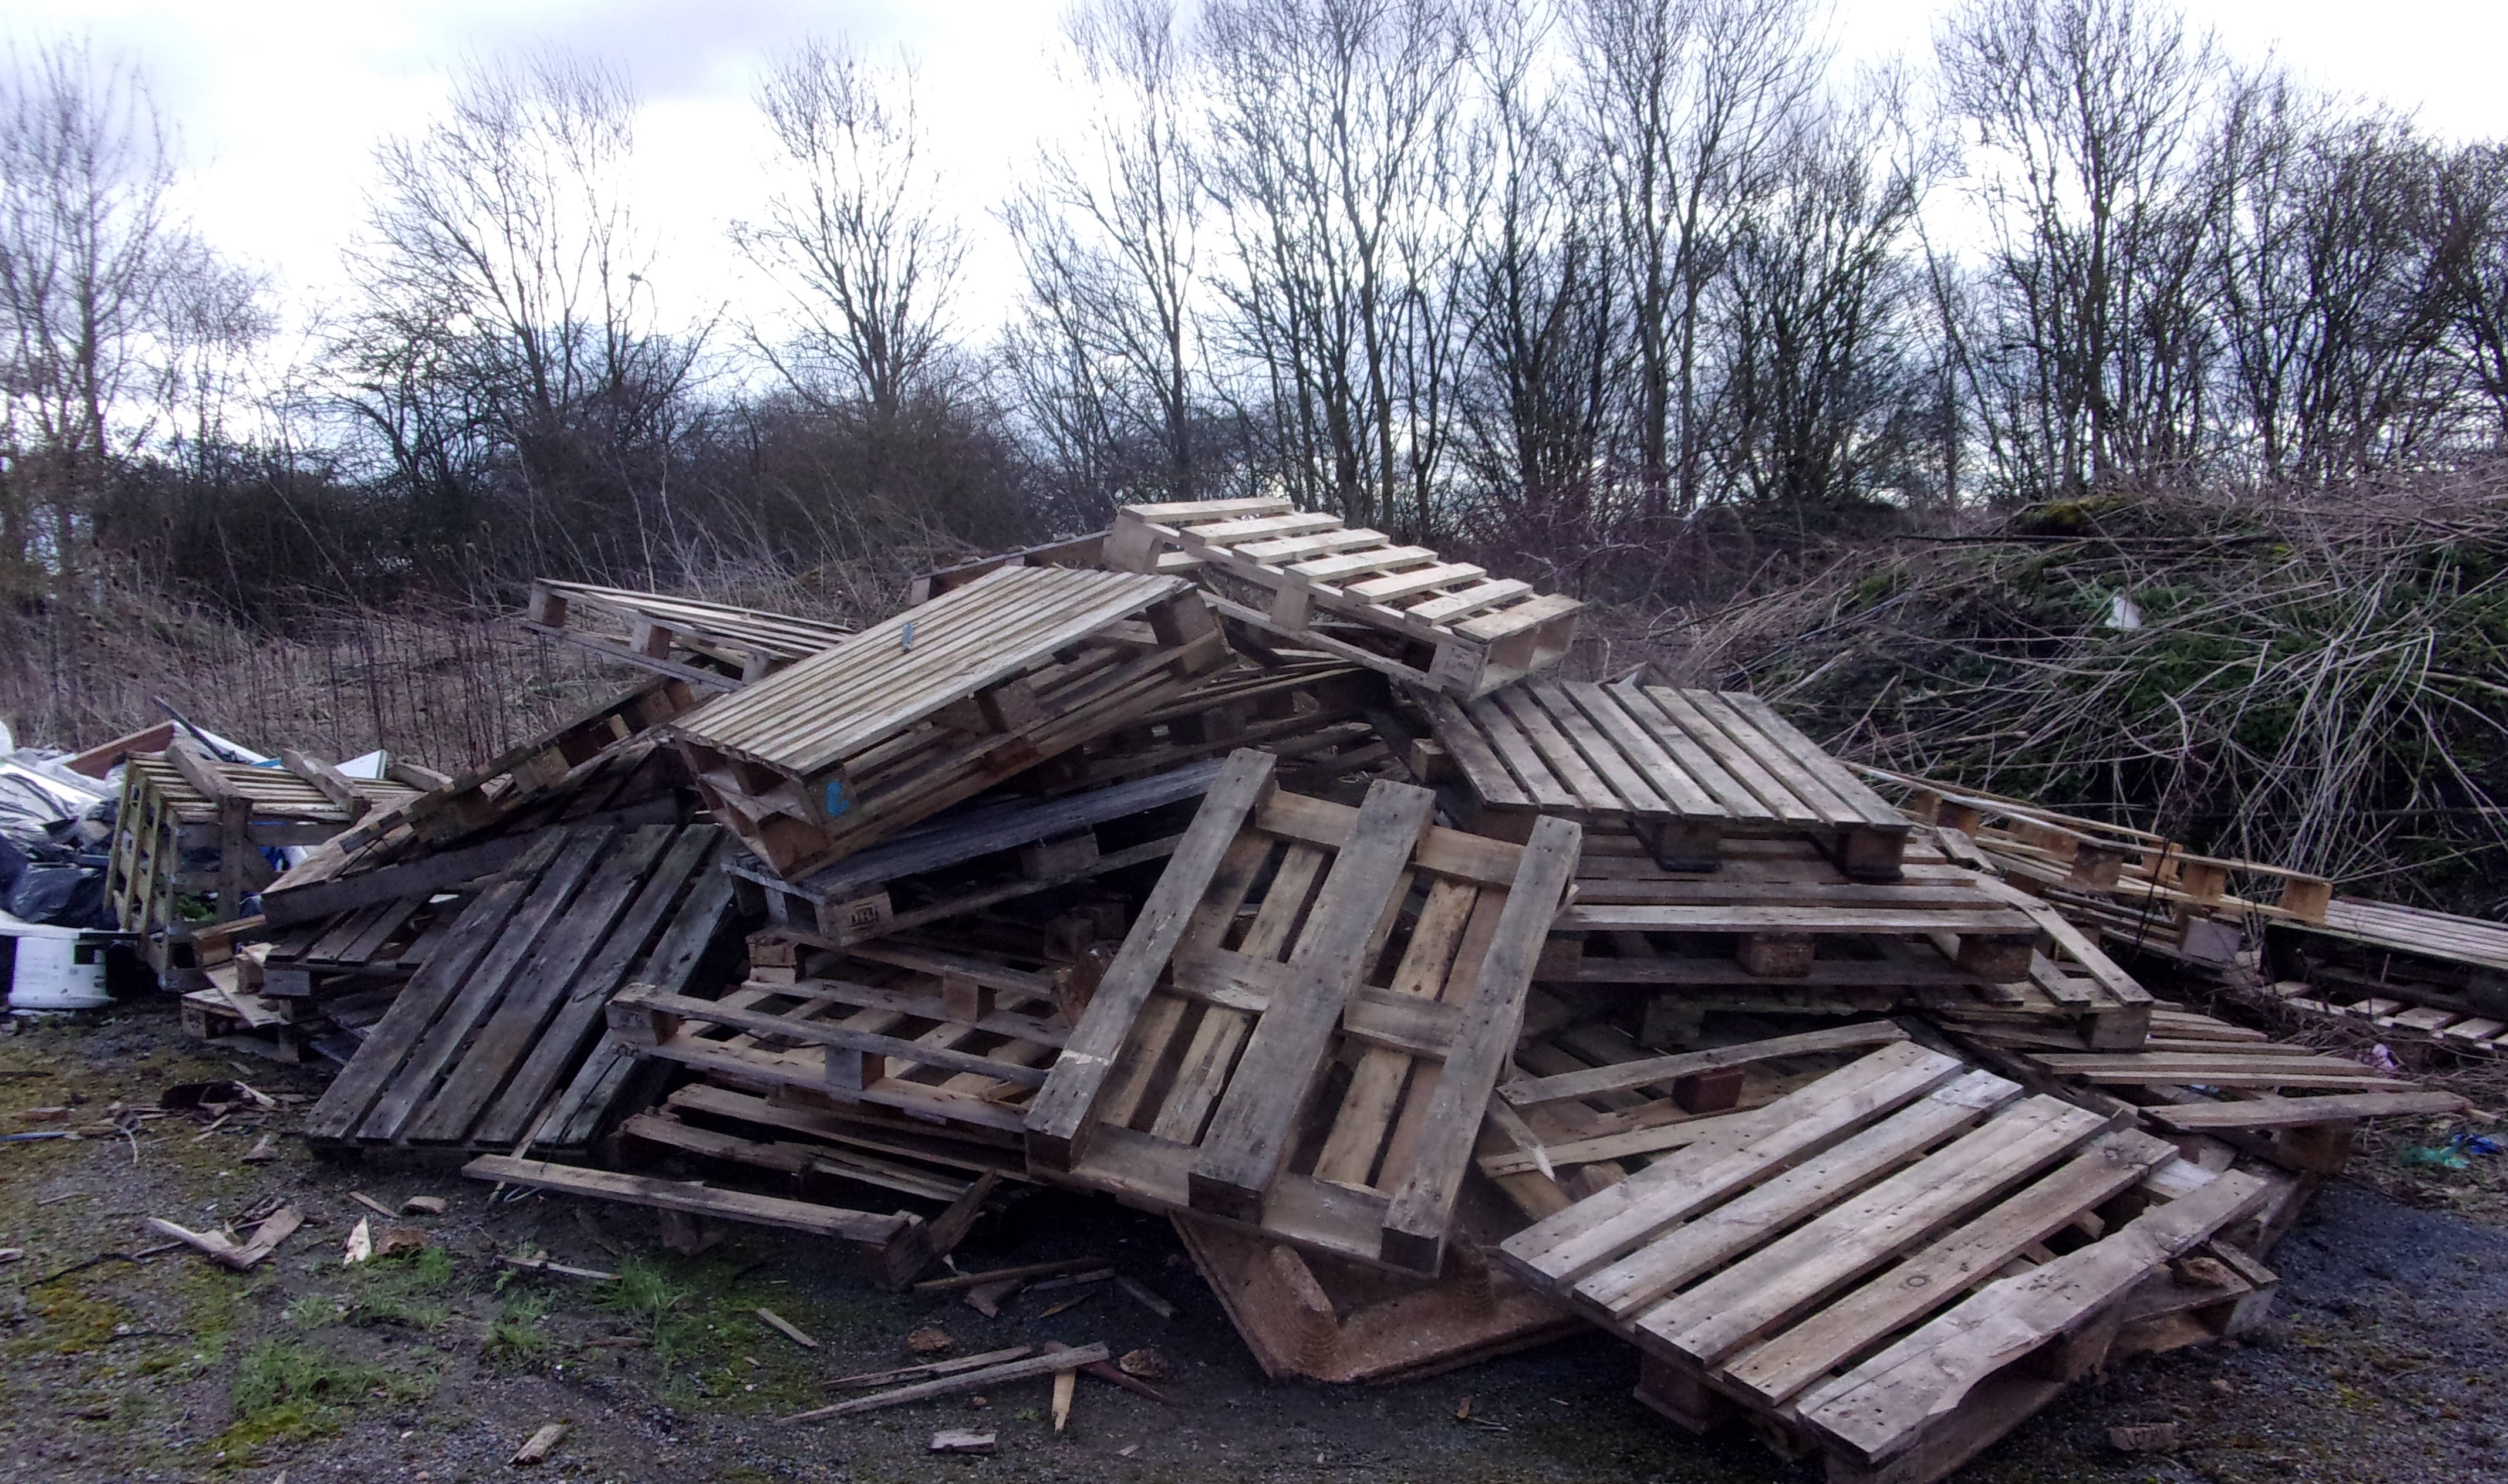 Littering, fly-tipping, dumped waste and abandoned vehicles